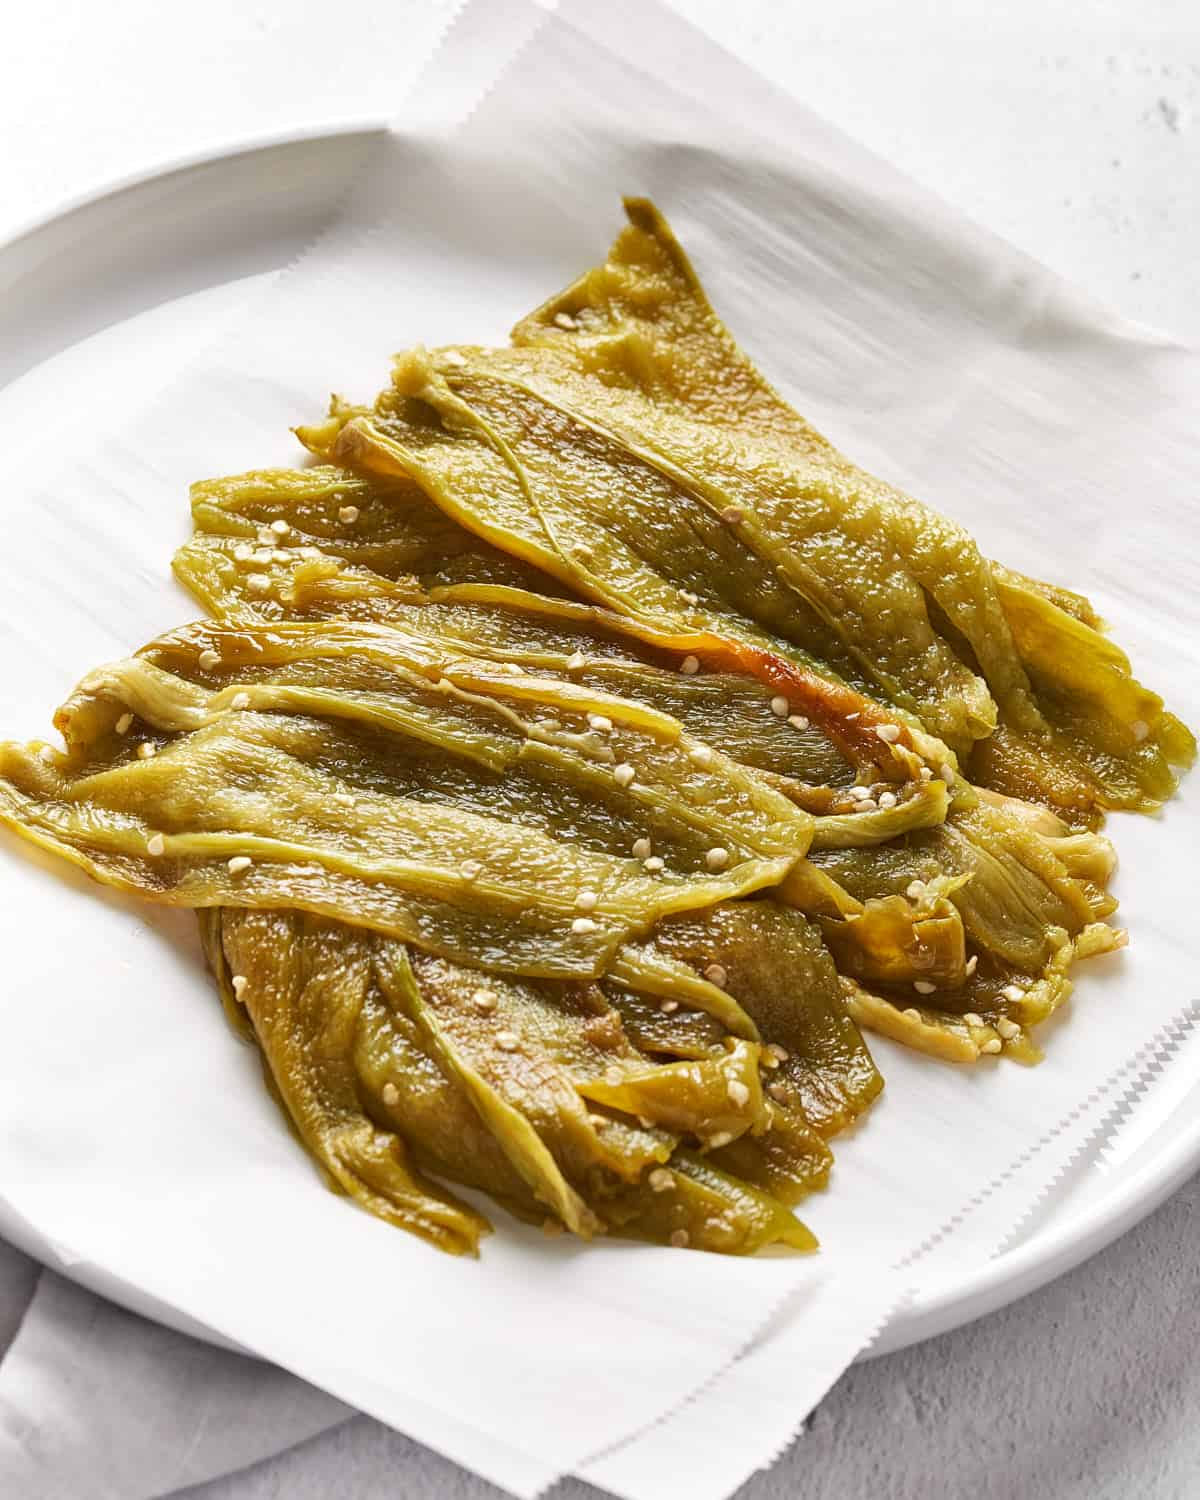 Angle view of Peeled and Roasted Hatch Chiles on parchment paper_Resplendent Kitchen